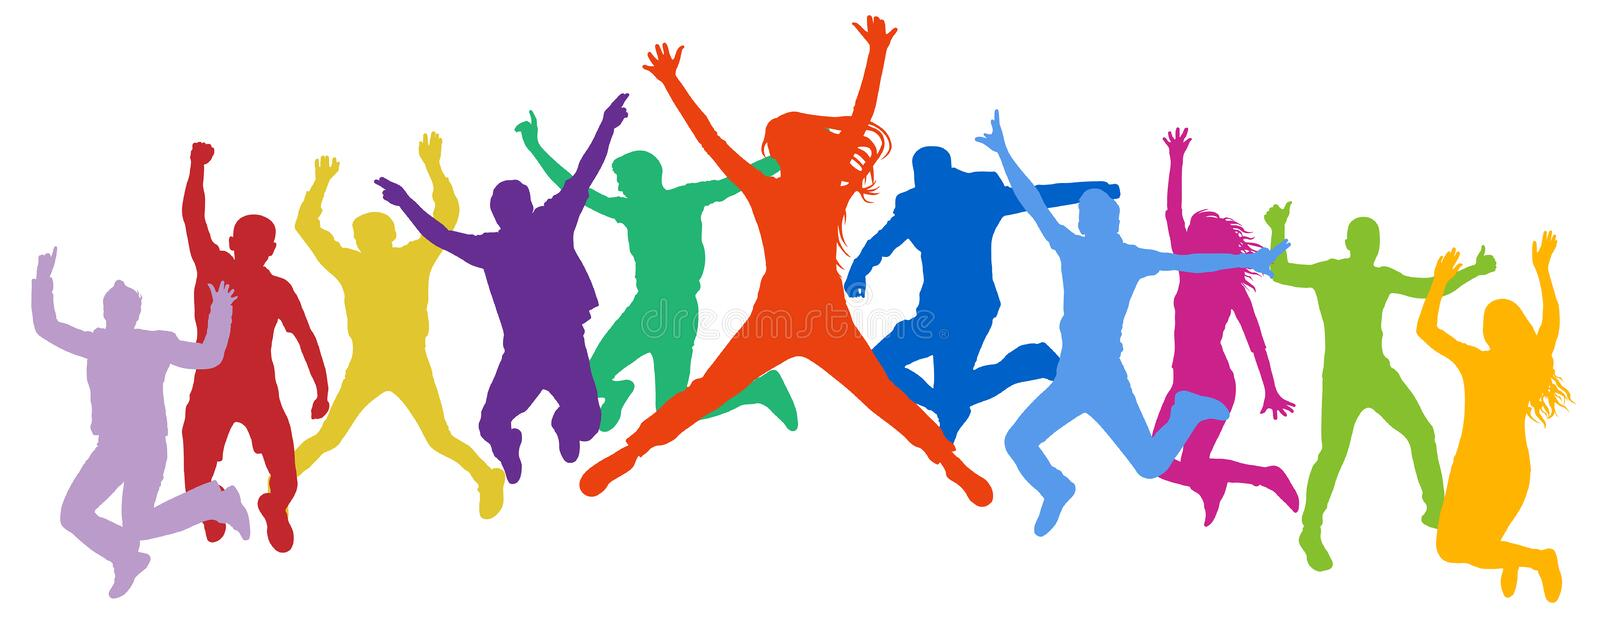 Cheerful crowd jumping people. Friends leap, bounce young teenagers, trampoline. vector illustration